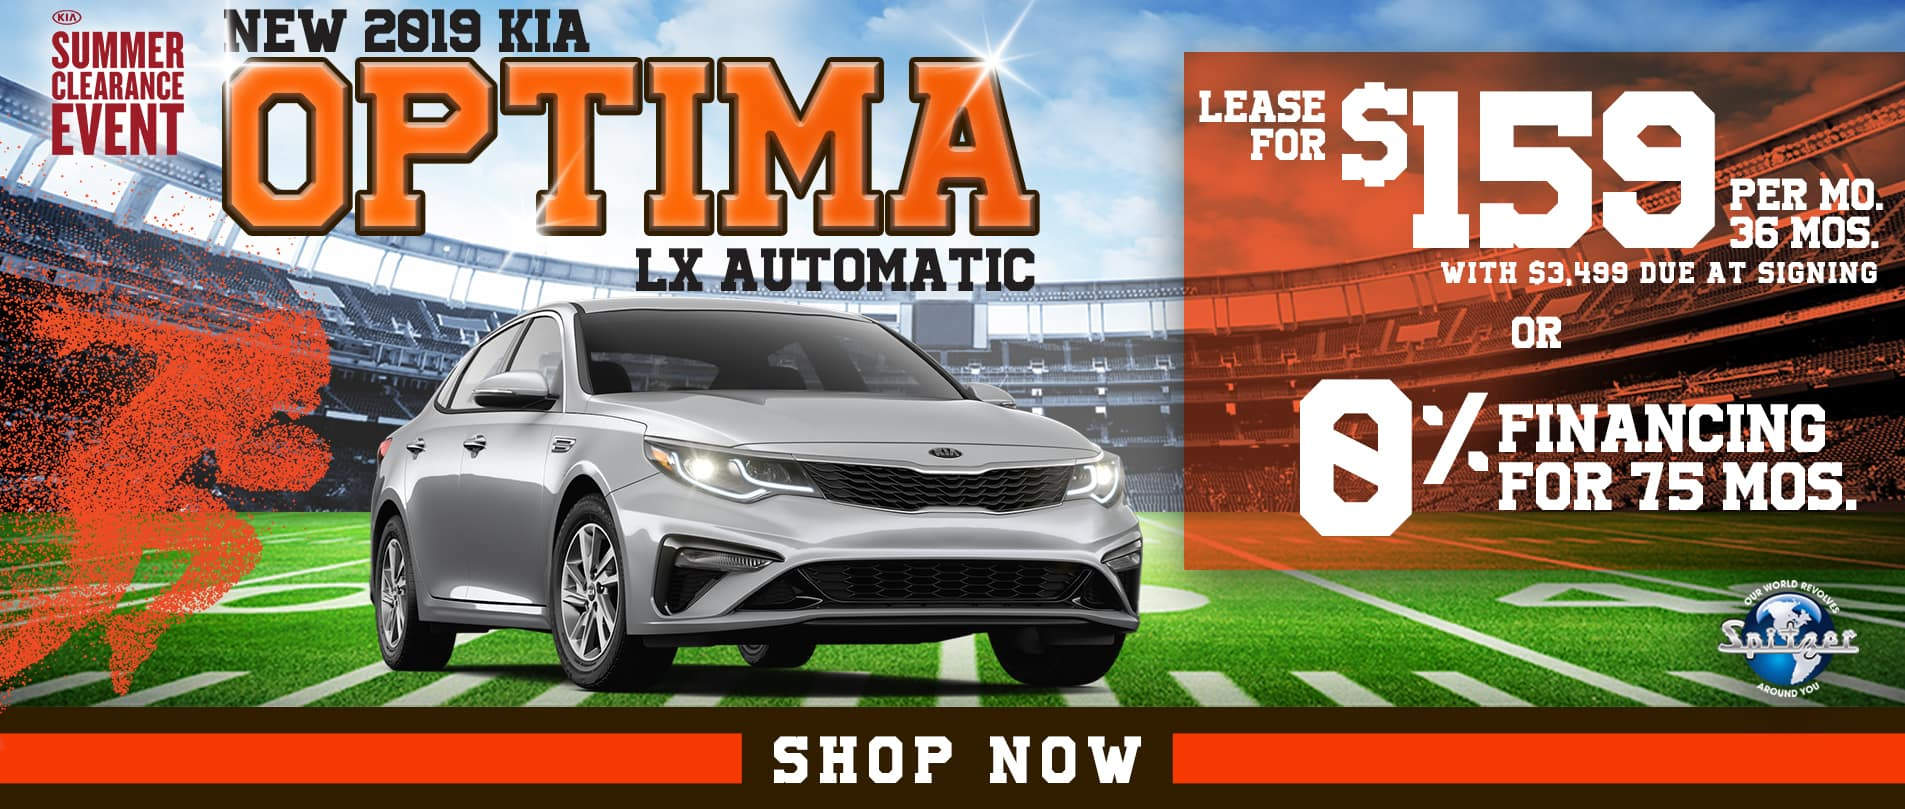 Optima | $159 per month or 0% financing for 75 mos